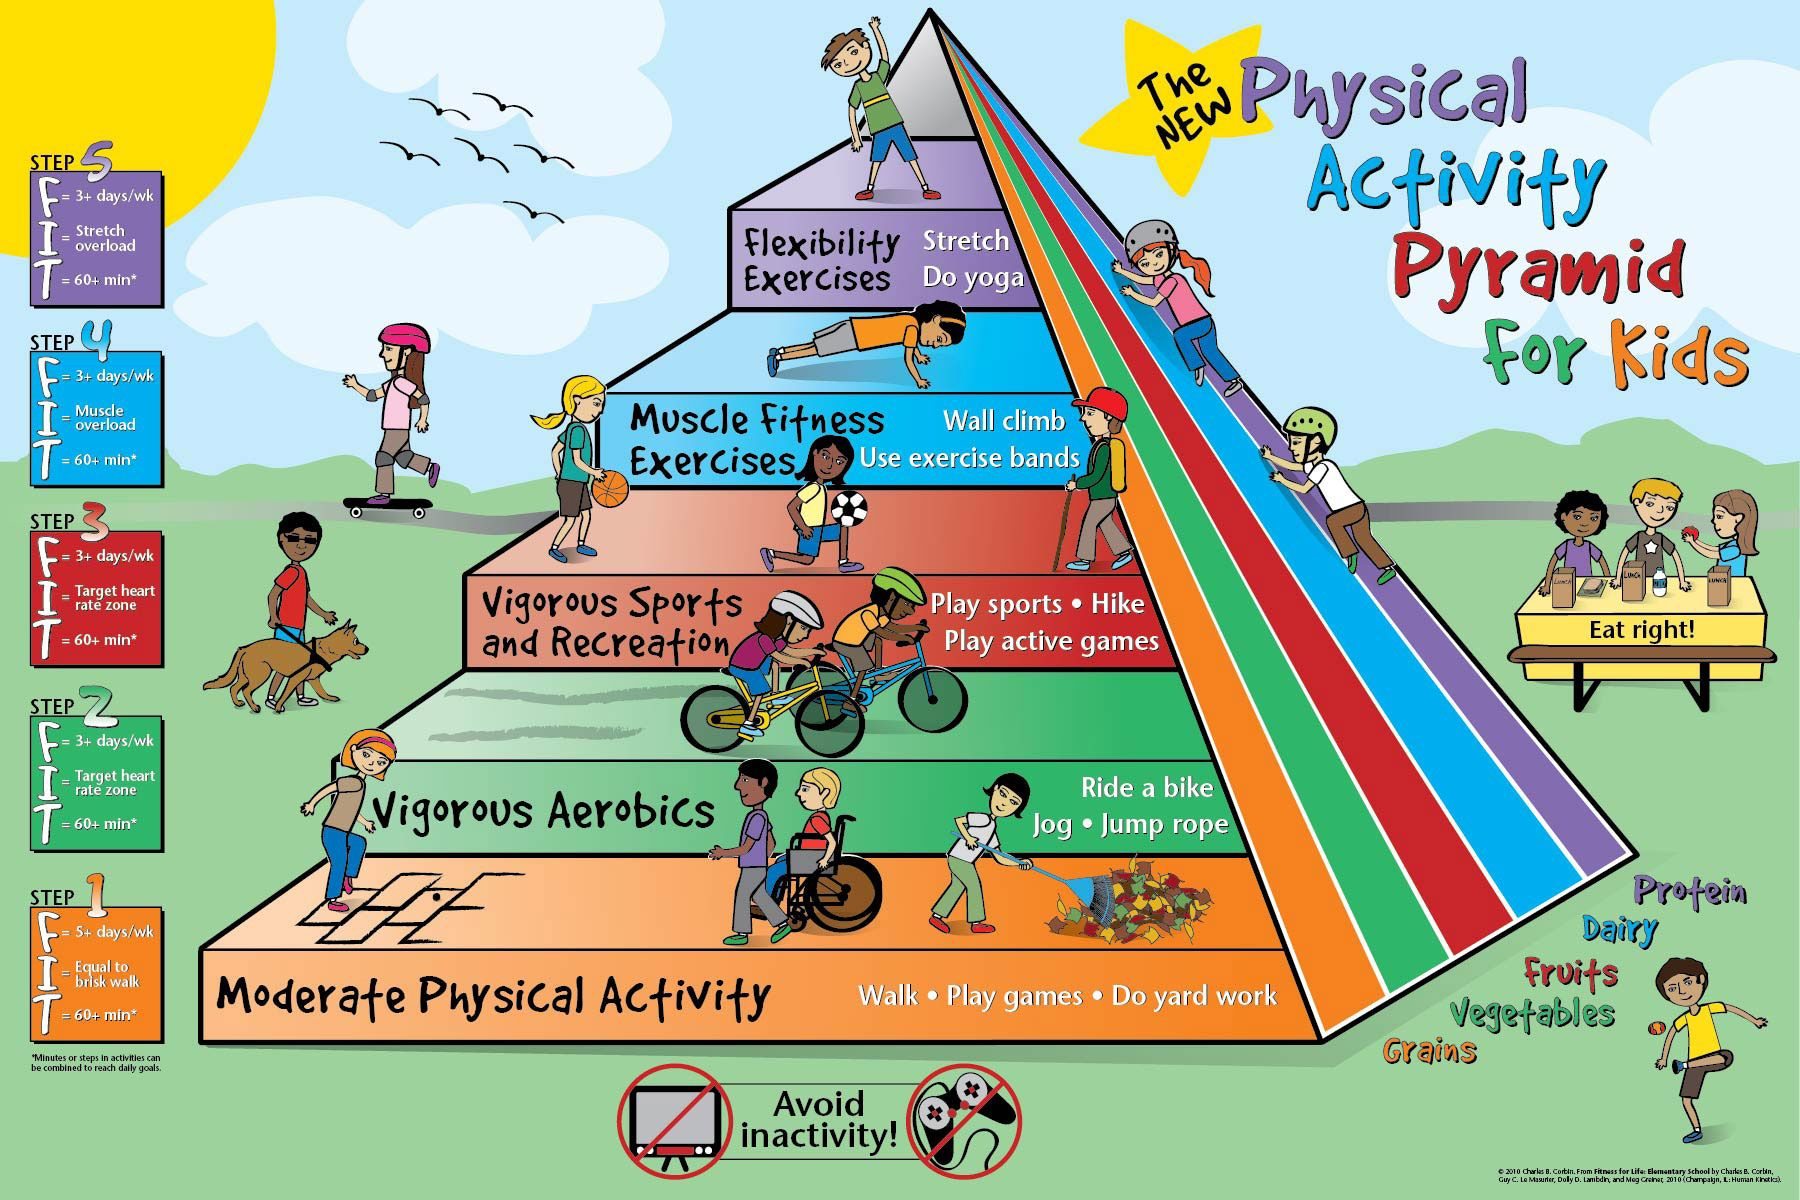 Physical Activity Pyramid For Kids Odpyramid Myplate For Kids Mypyramid